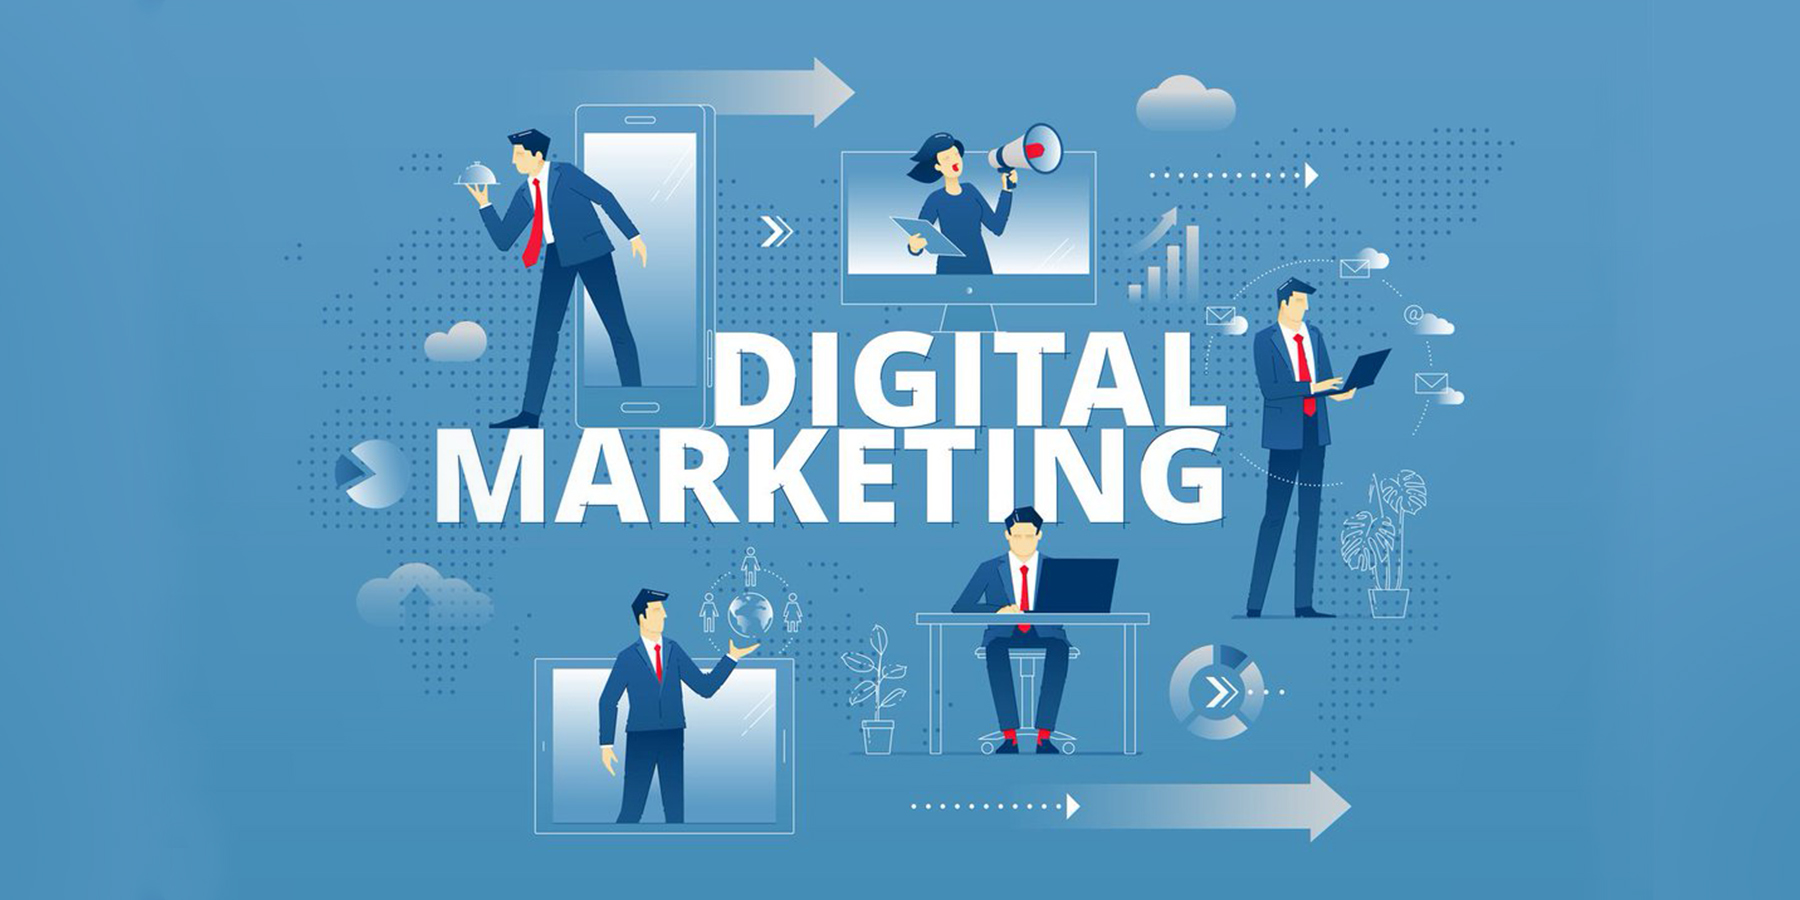 5 Reasons To Hire A Digital Marketing Agency